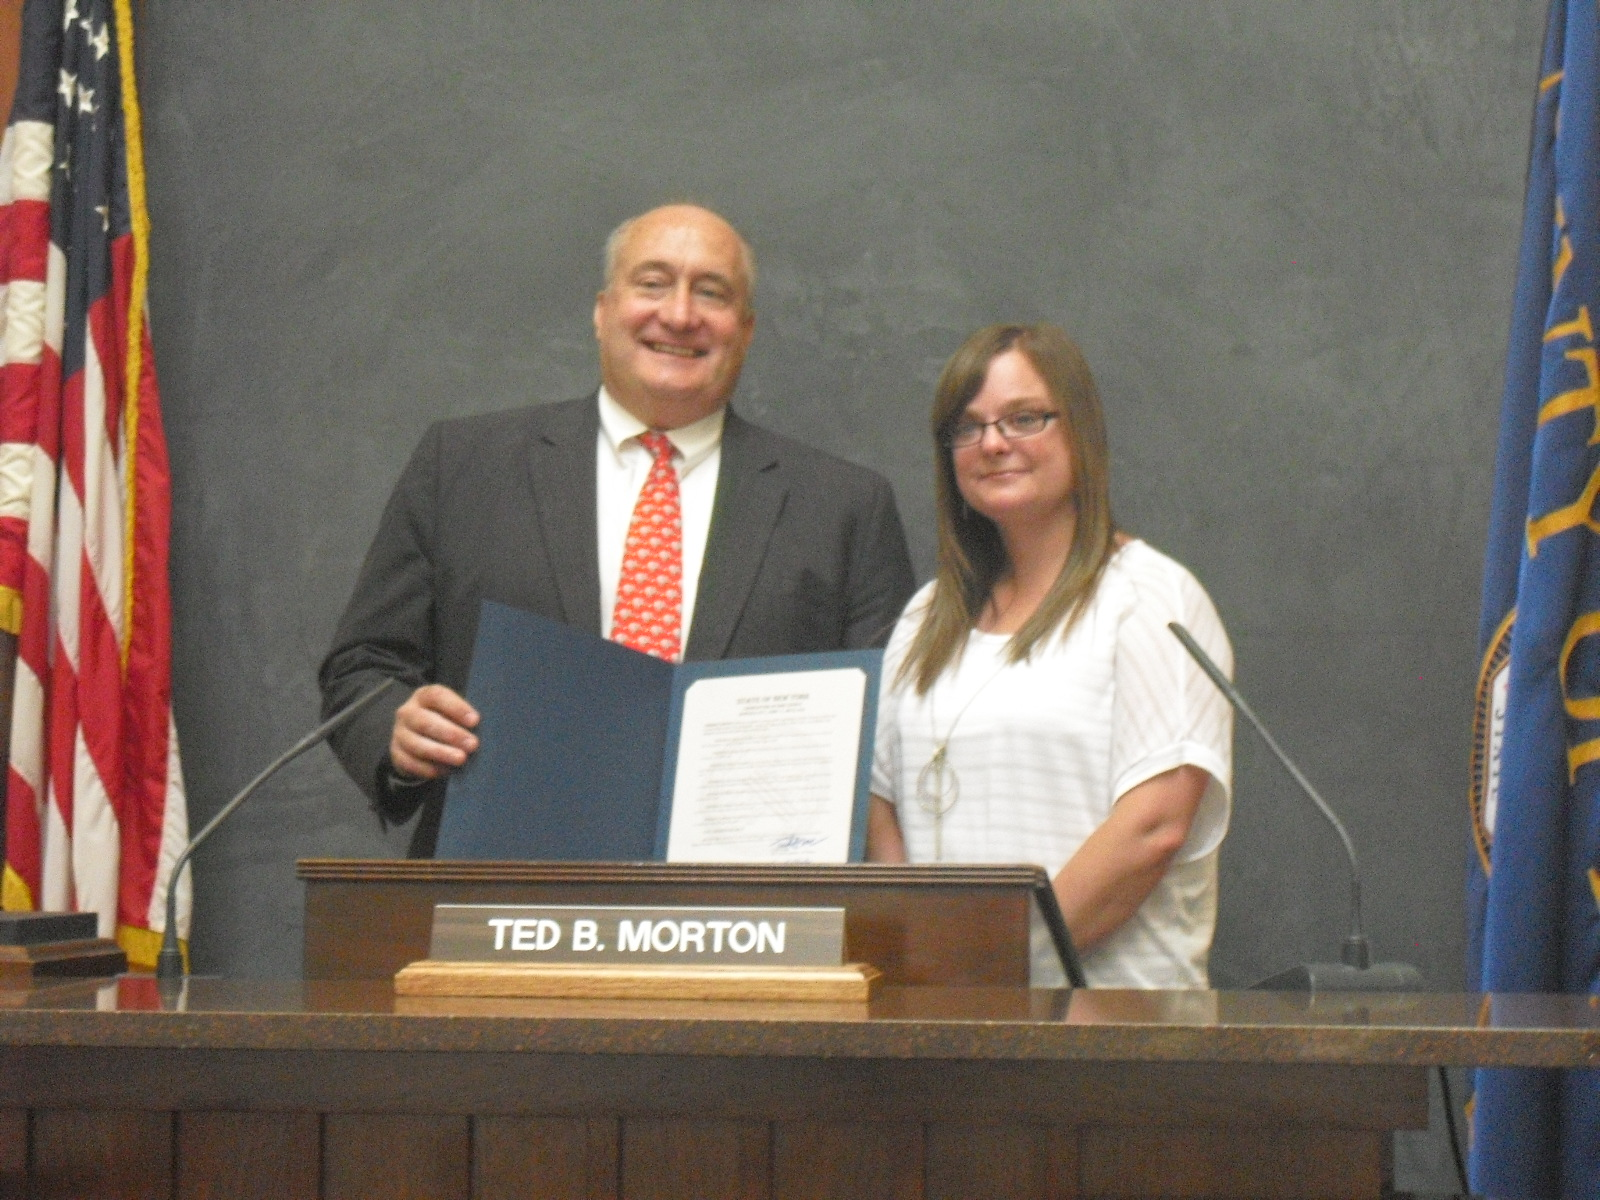 Renee Cerullo and Ted Morton Erie County Legislative